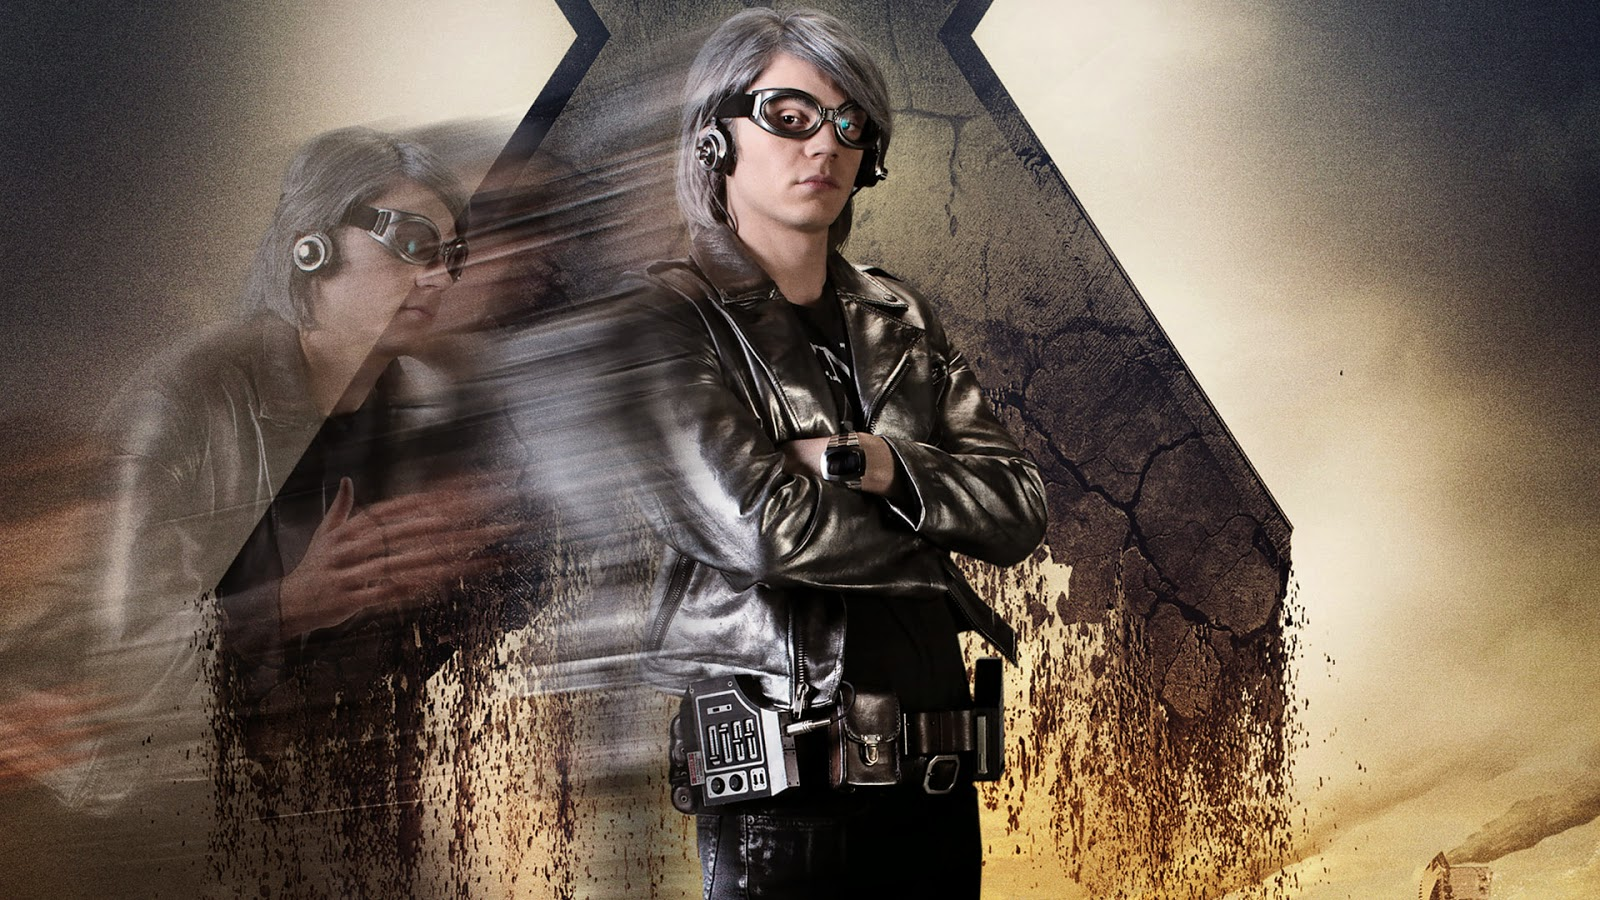 Lady Halloween Cosplay - Quicksilver from X-Men  Days of Future PastQuicksilver Days Of Future Past Cosplay